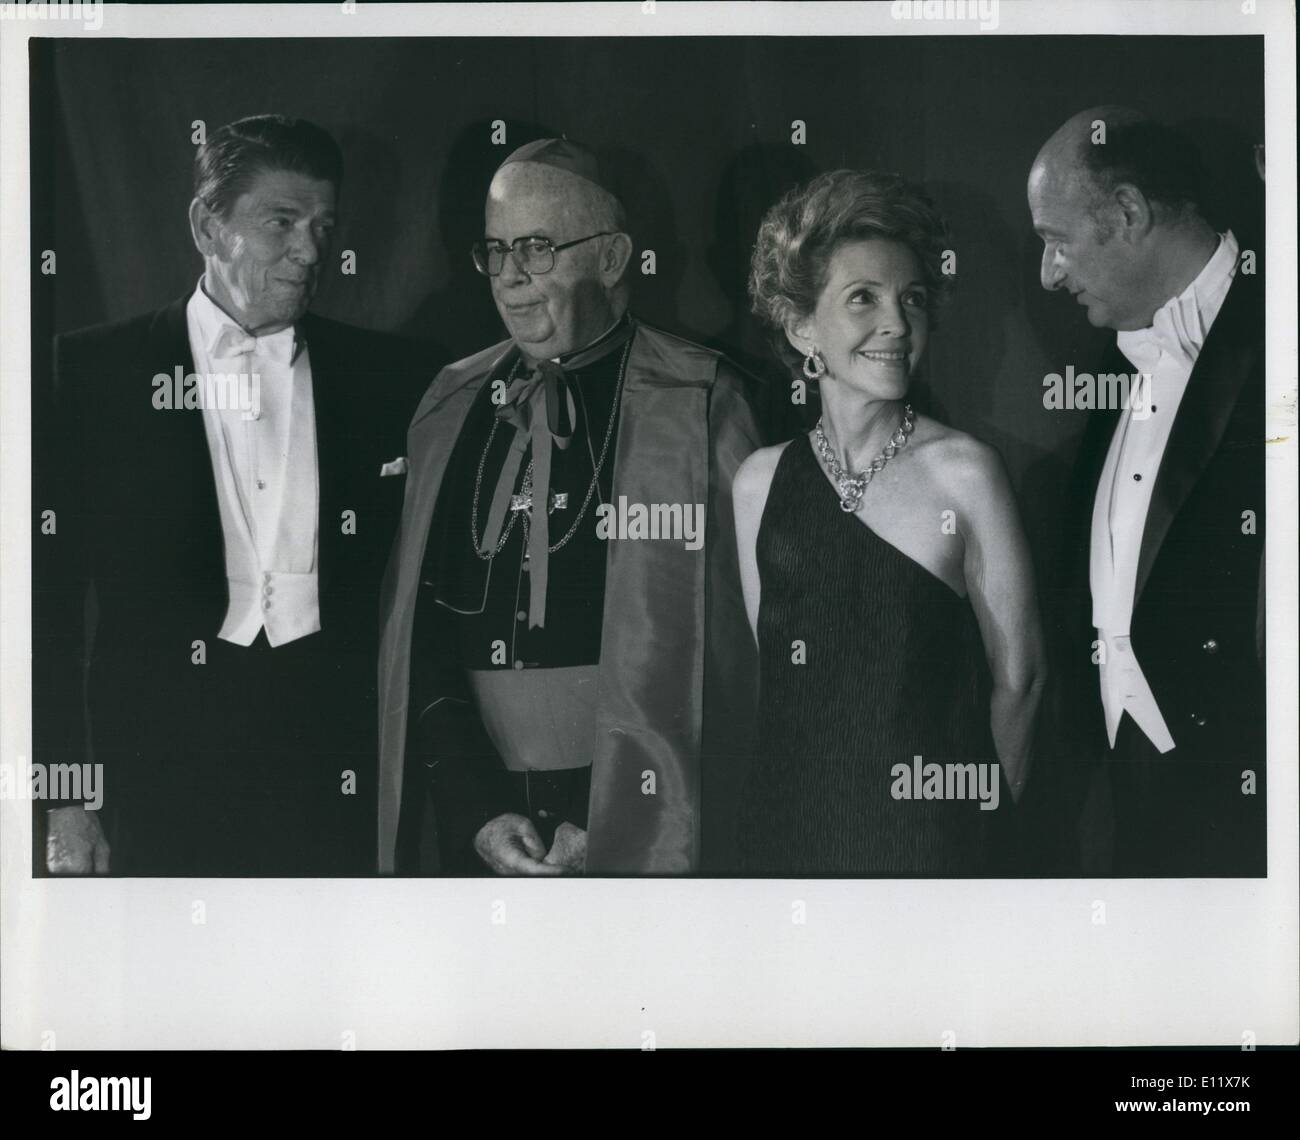 Oct. 10, 1980 - New york: President carter and Republican presidential candidate Ronald Reagan both attended the Al smith Dinner held at the waldorf Astoria Hotel in New york. Photo shows Ronald Reagan, church official, Nancy Reagan and Ed koch, Mayor of New york. - Stock Image